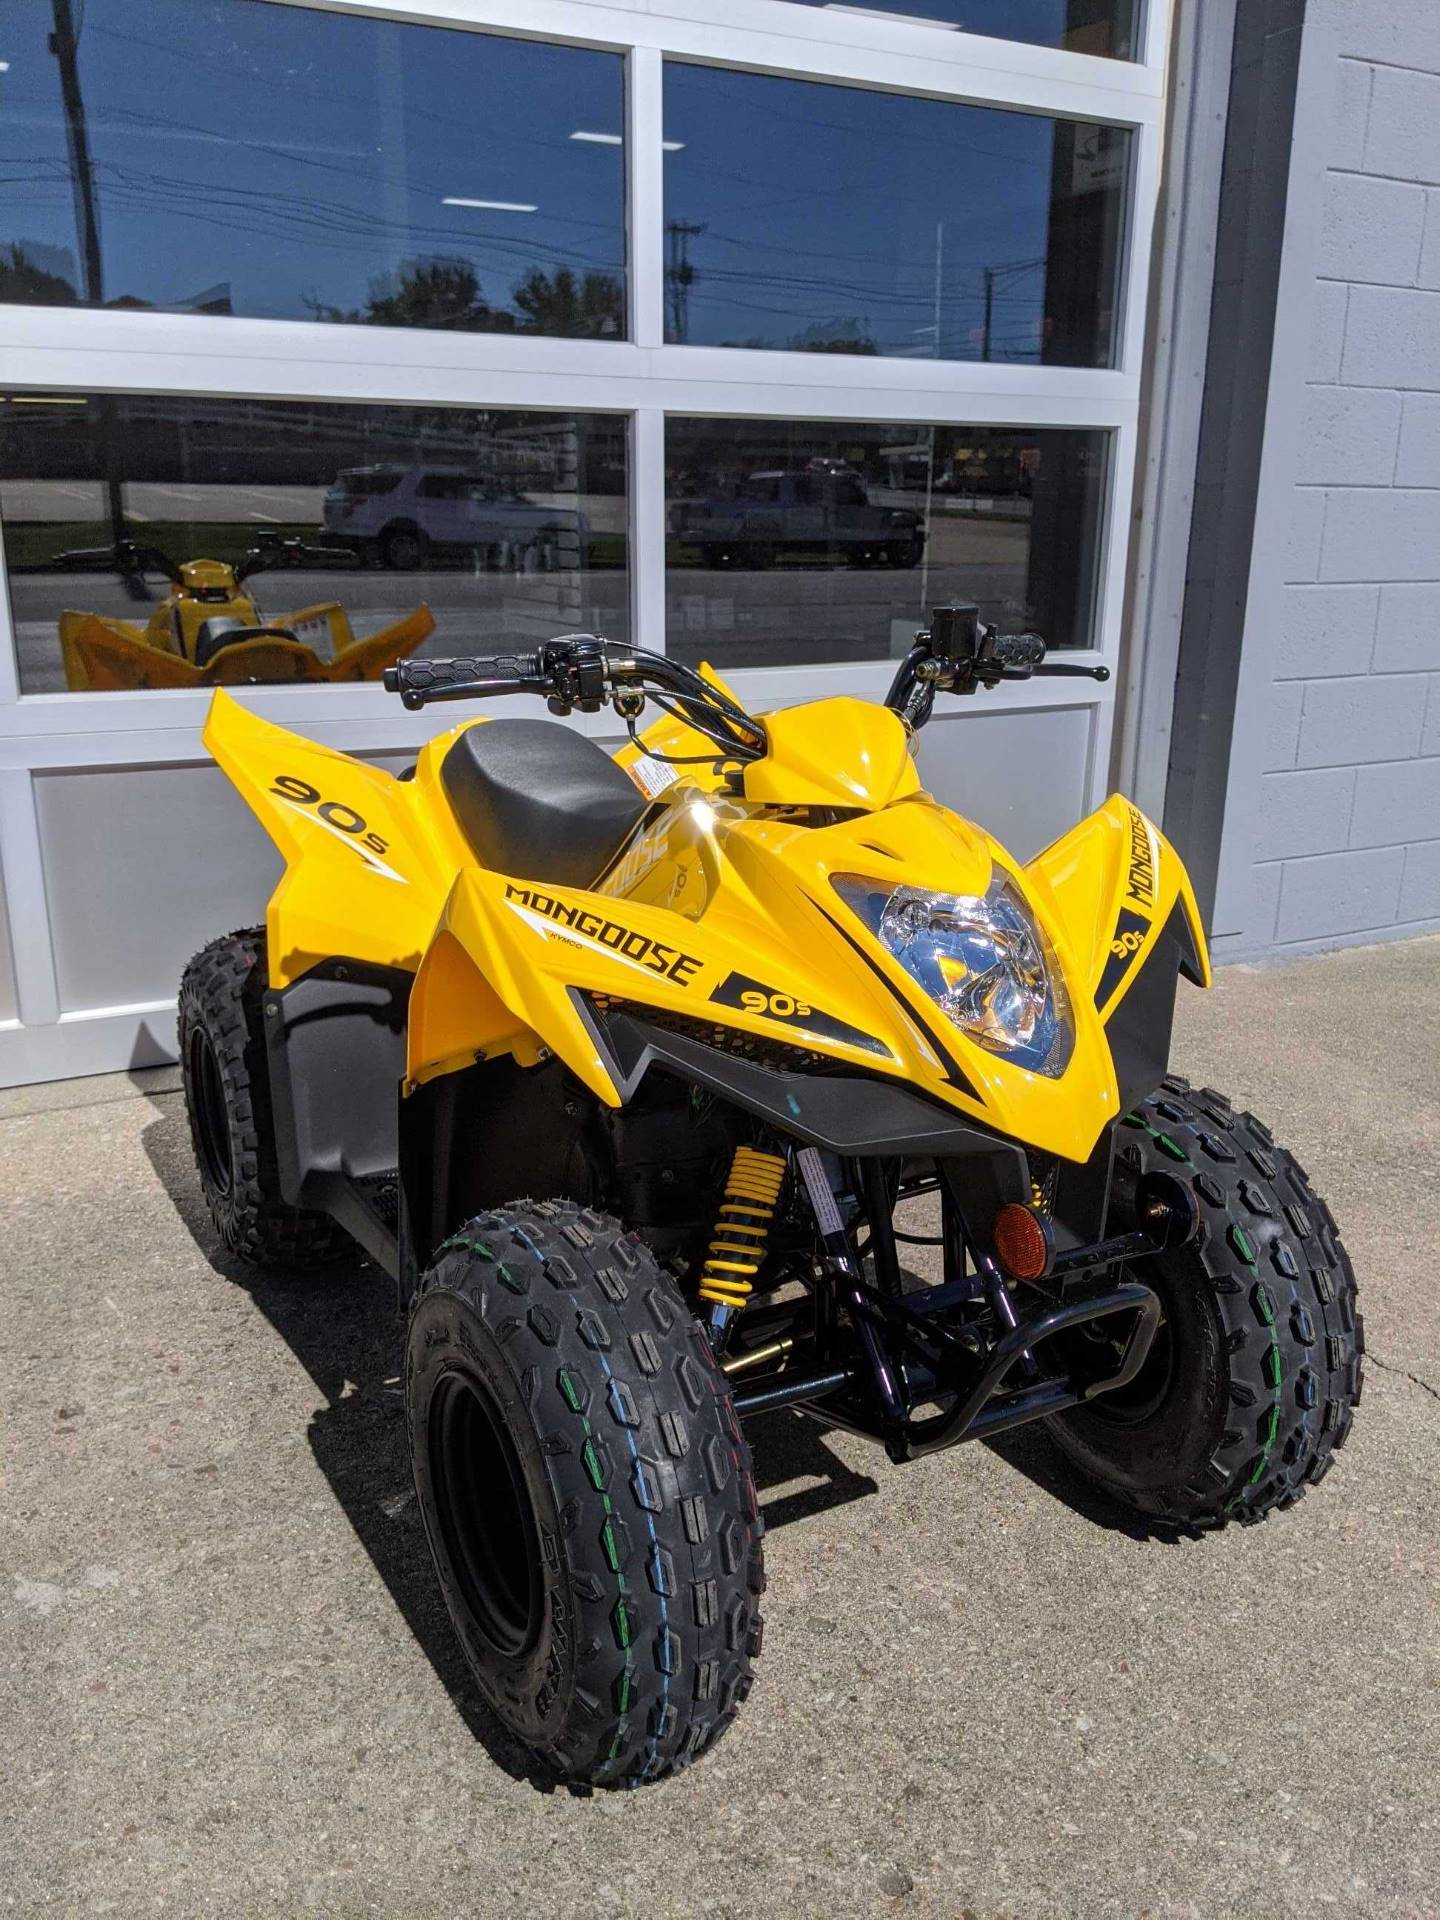 2021 Kymco Mongoose 90s in Jasper, Indiana - Photo 1